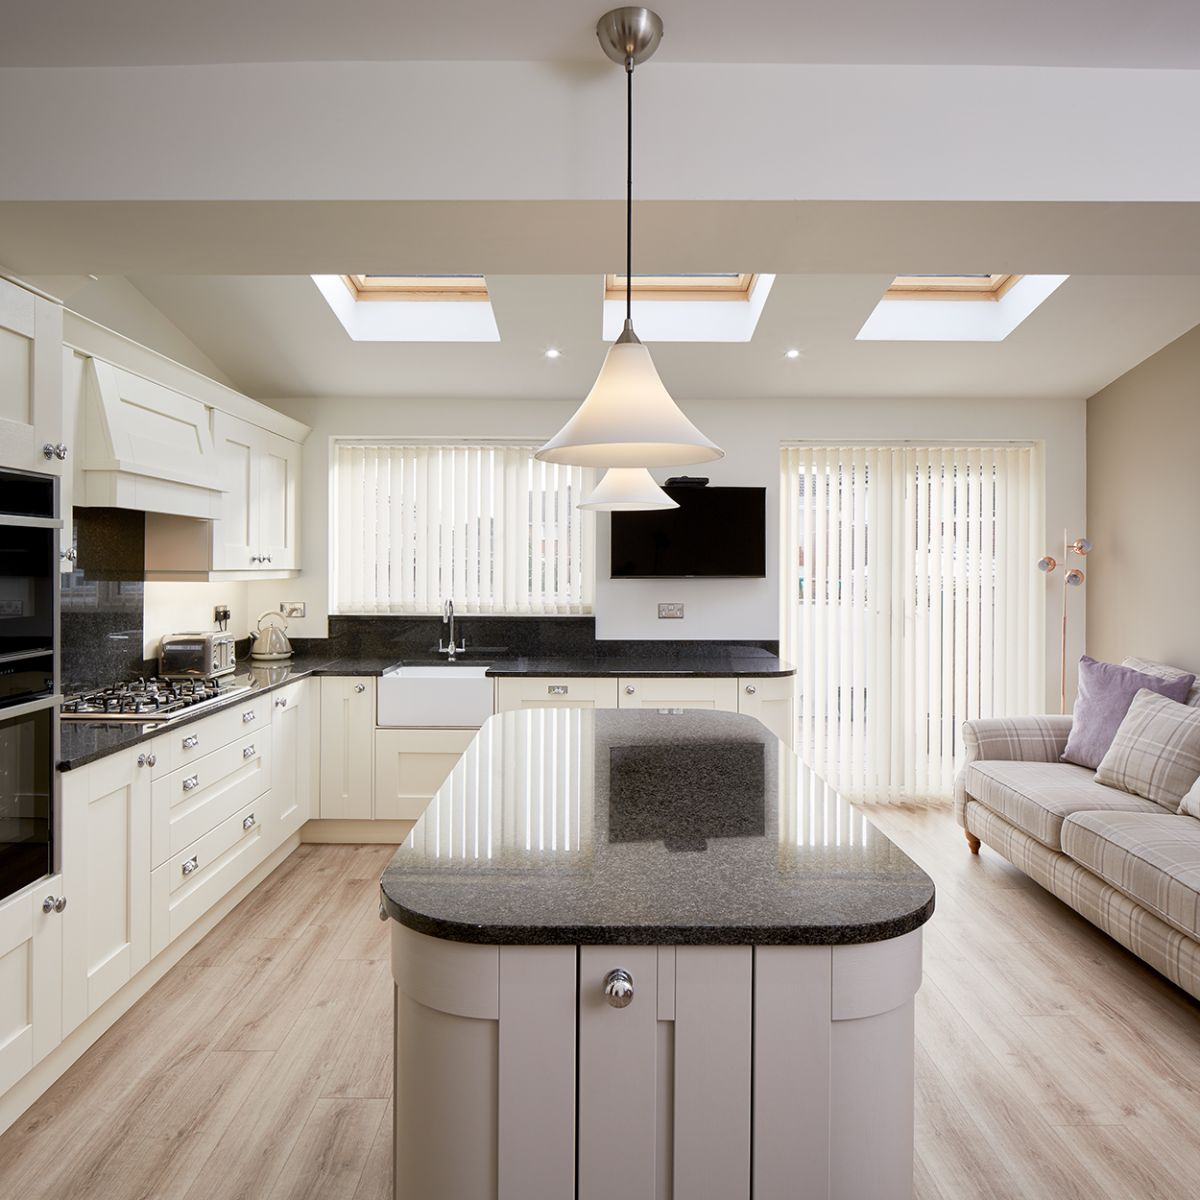 Modern white kitchen with black granite worktop.